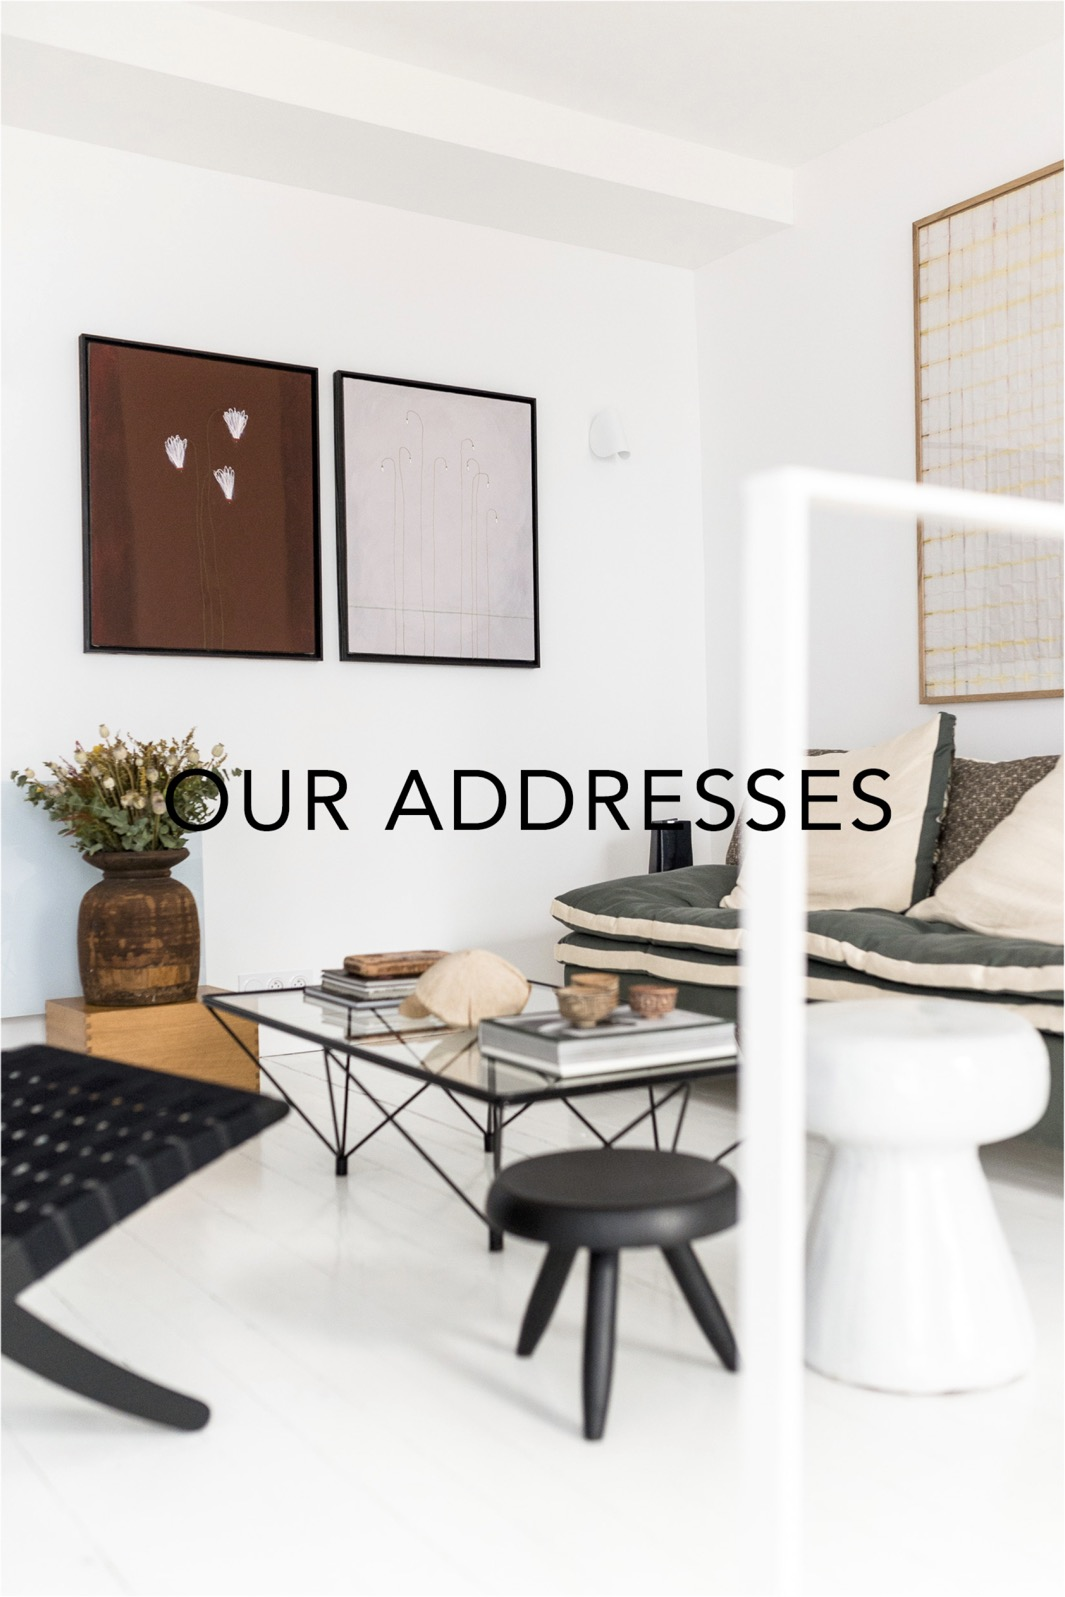 Our addresses